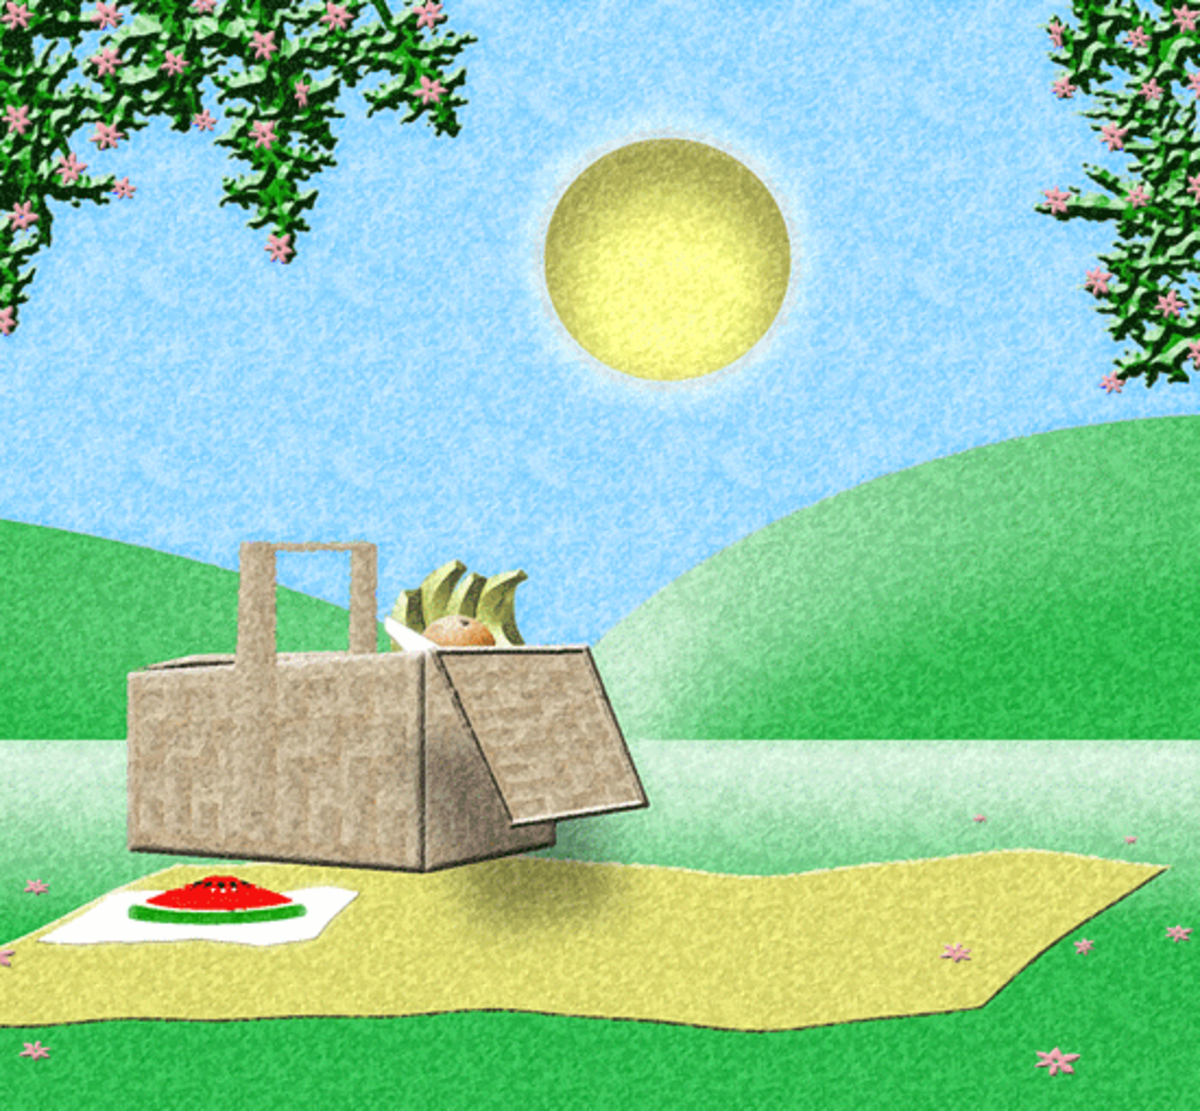 spring picnic clipart - photo #6